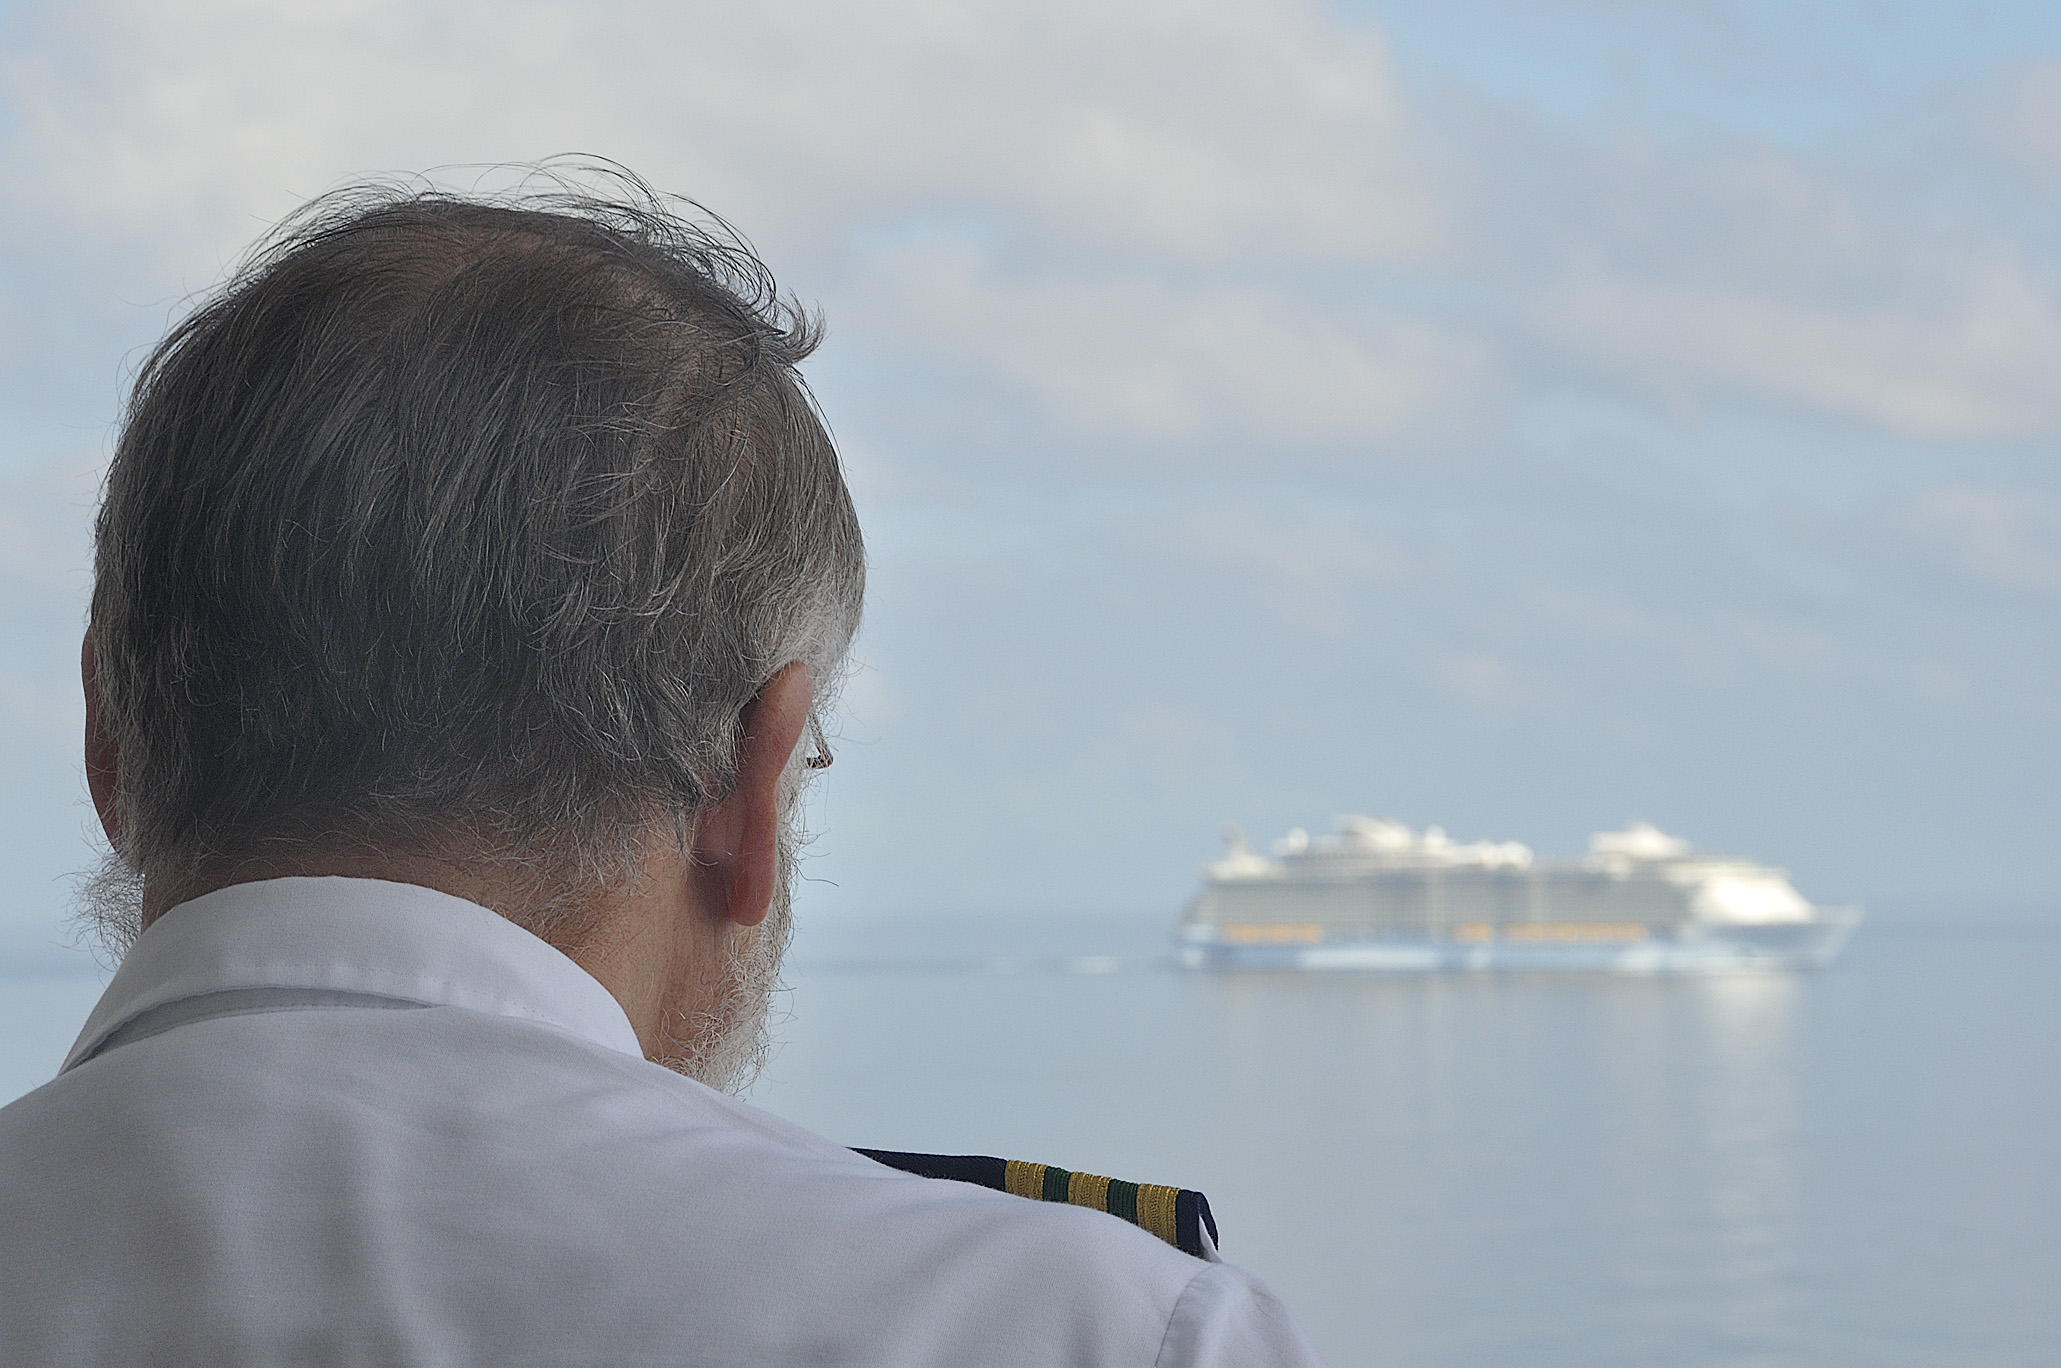 In 2009 we were aboard the Navigator of the Seas when Oasis made her inaugural voyage out of Fort Lauderdale.  When the captain announced she was alongside, the spa crew, the waiters, even the officers came out to the rail to see her sailing beside us.  There was nothing like this on the seas, it was a complete innovation for cruising and I was captivated by this new ship, but a little fearful about her size.  The following year, I booked a voyage on Oasis of the Seas and was pleasantly surprised!